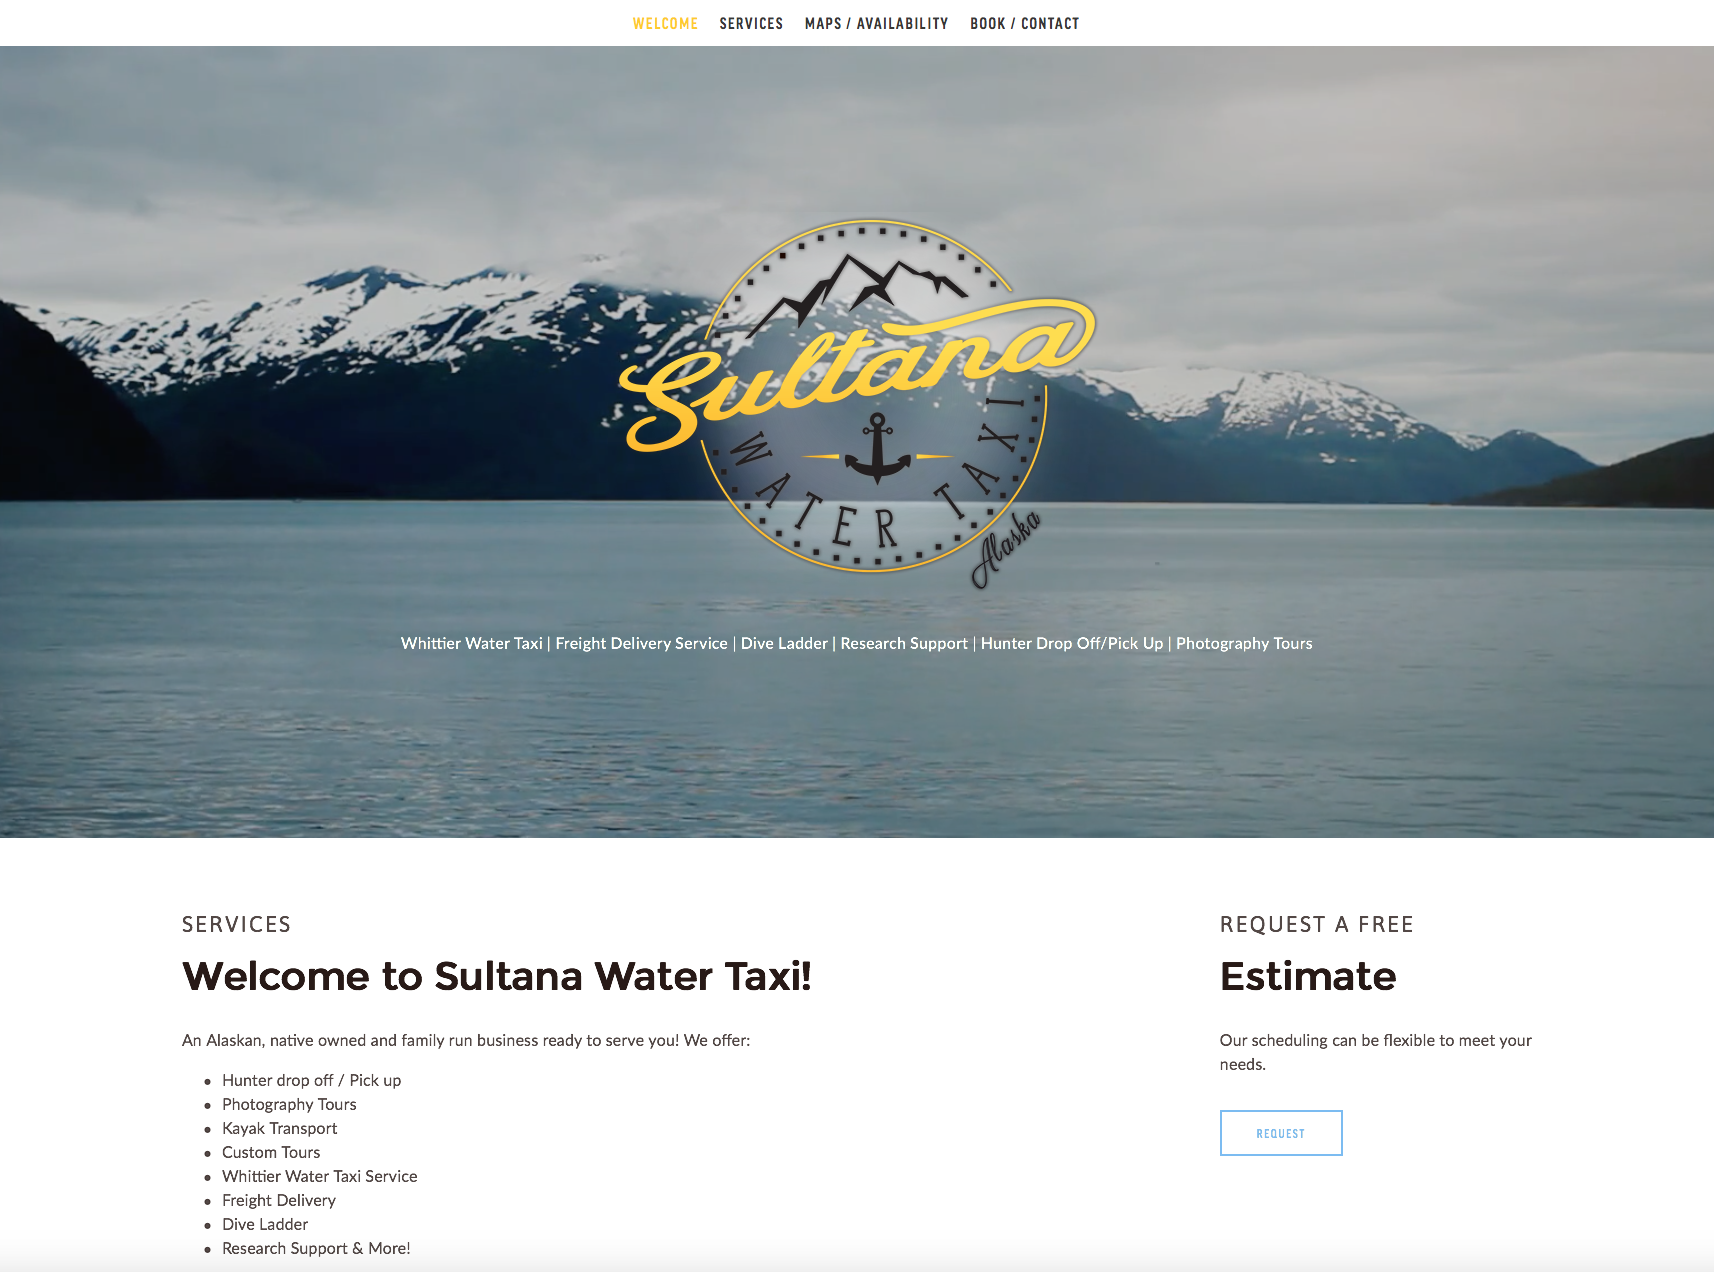 Sultana Water Taxi